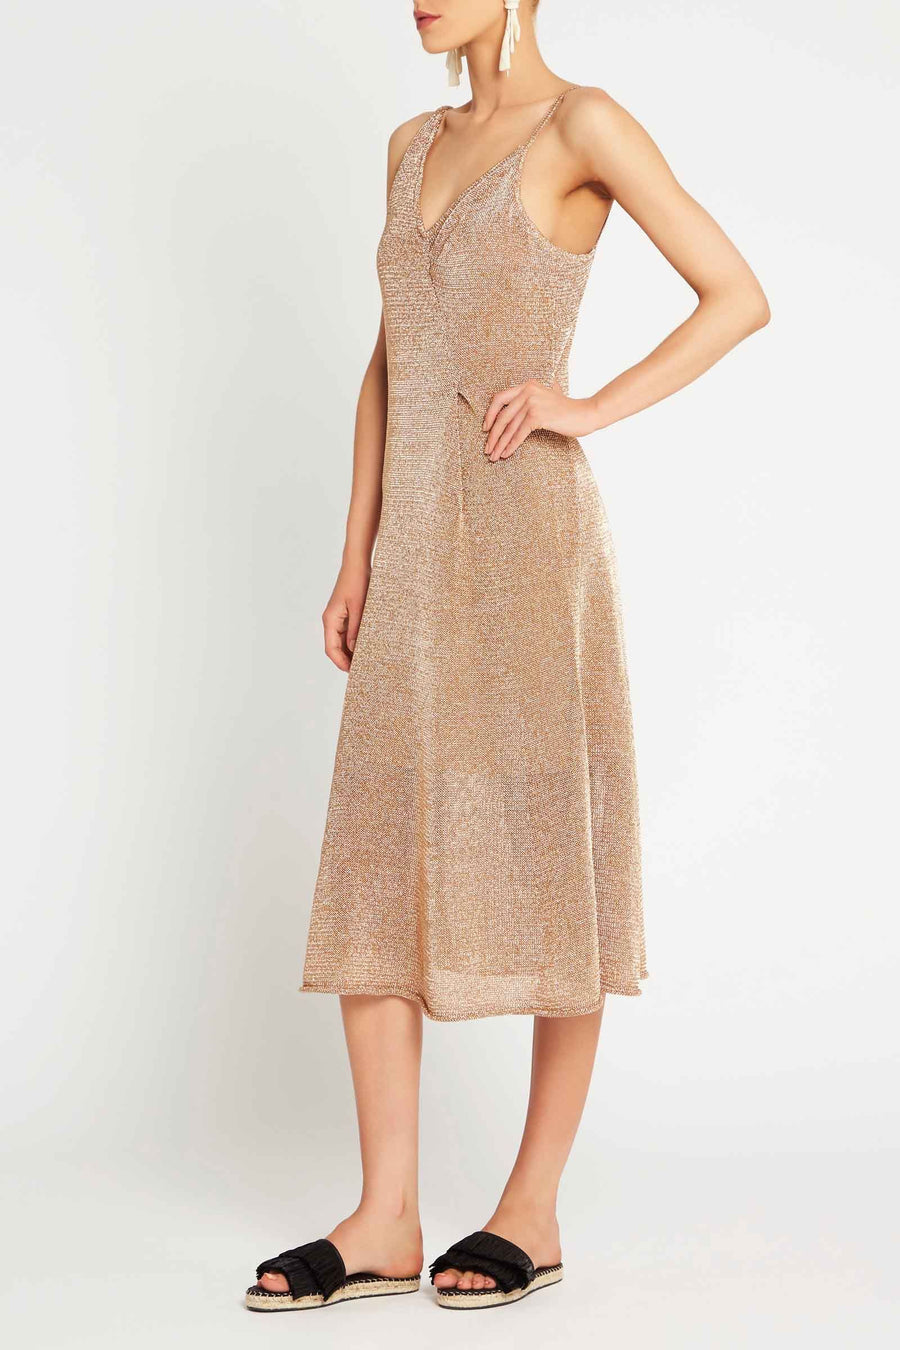 SASS & BIDE - Liquid Metal dress - Copper